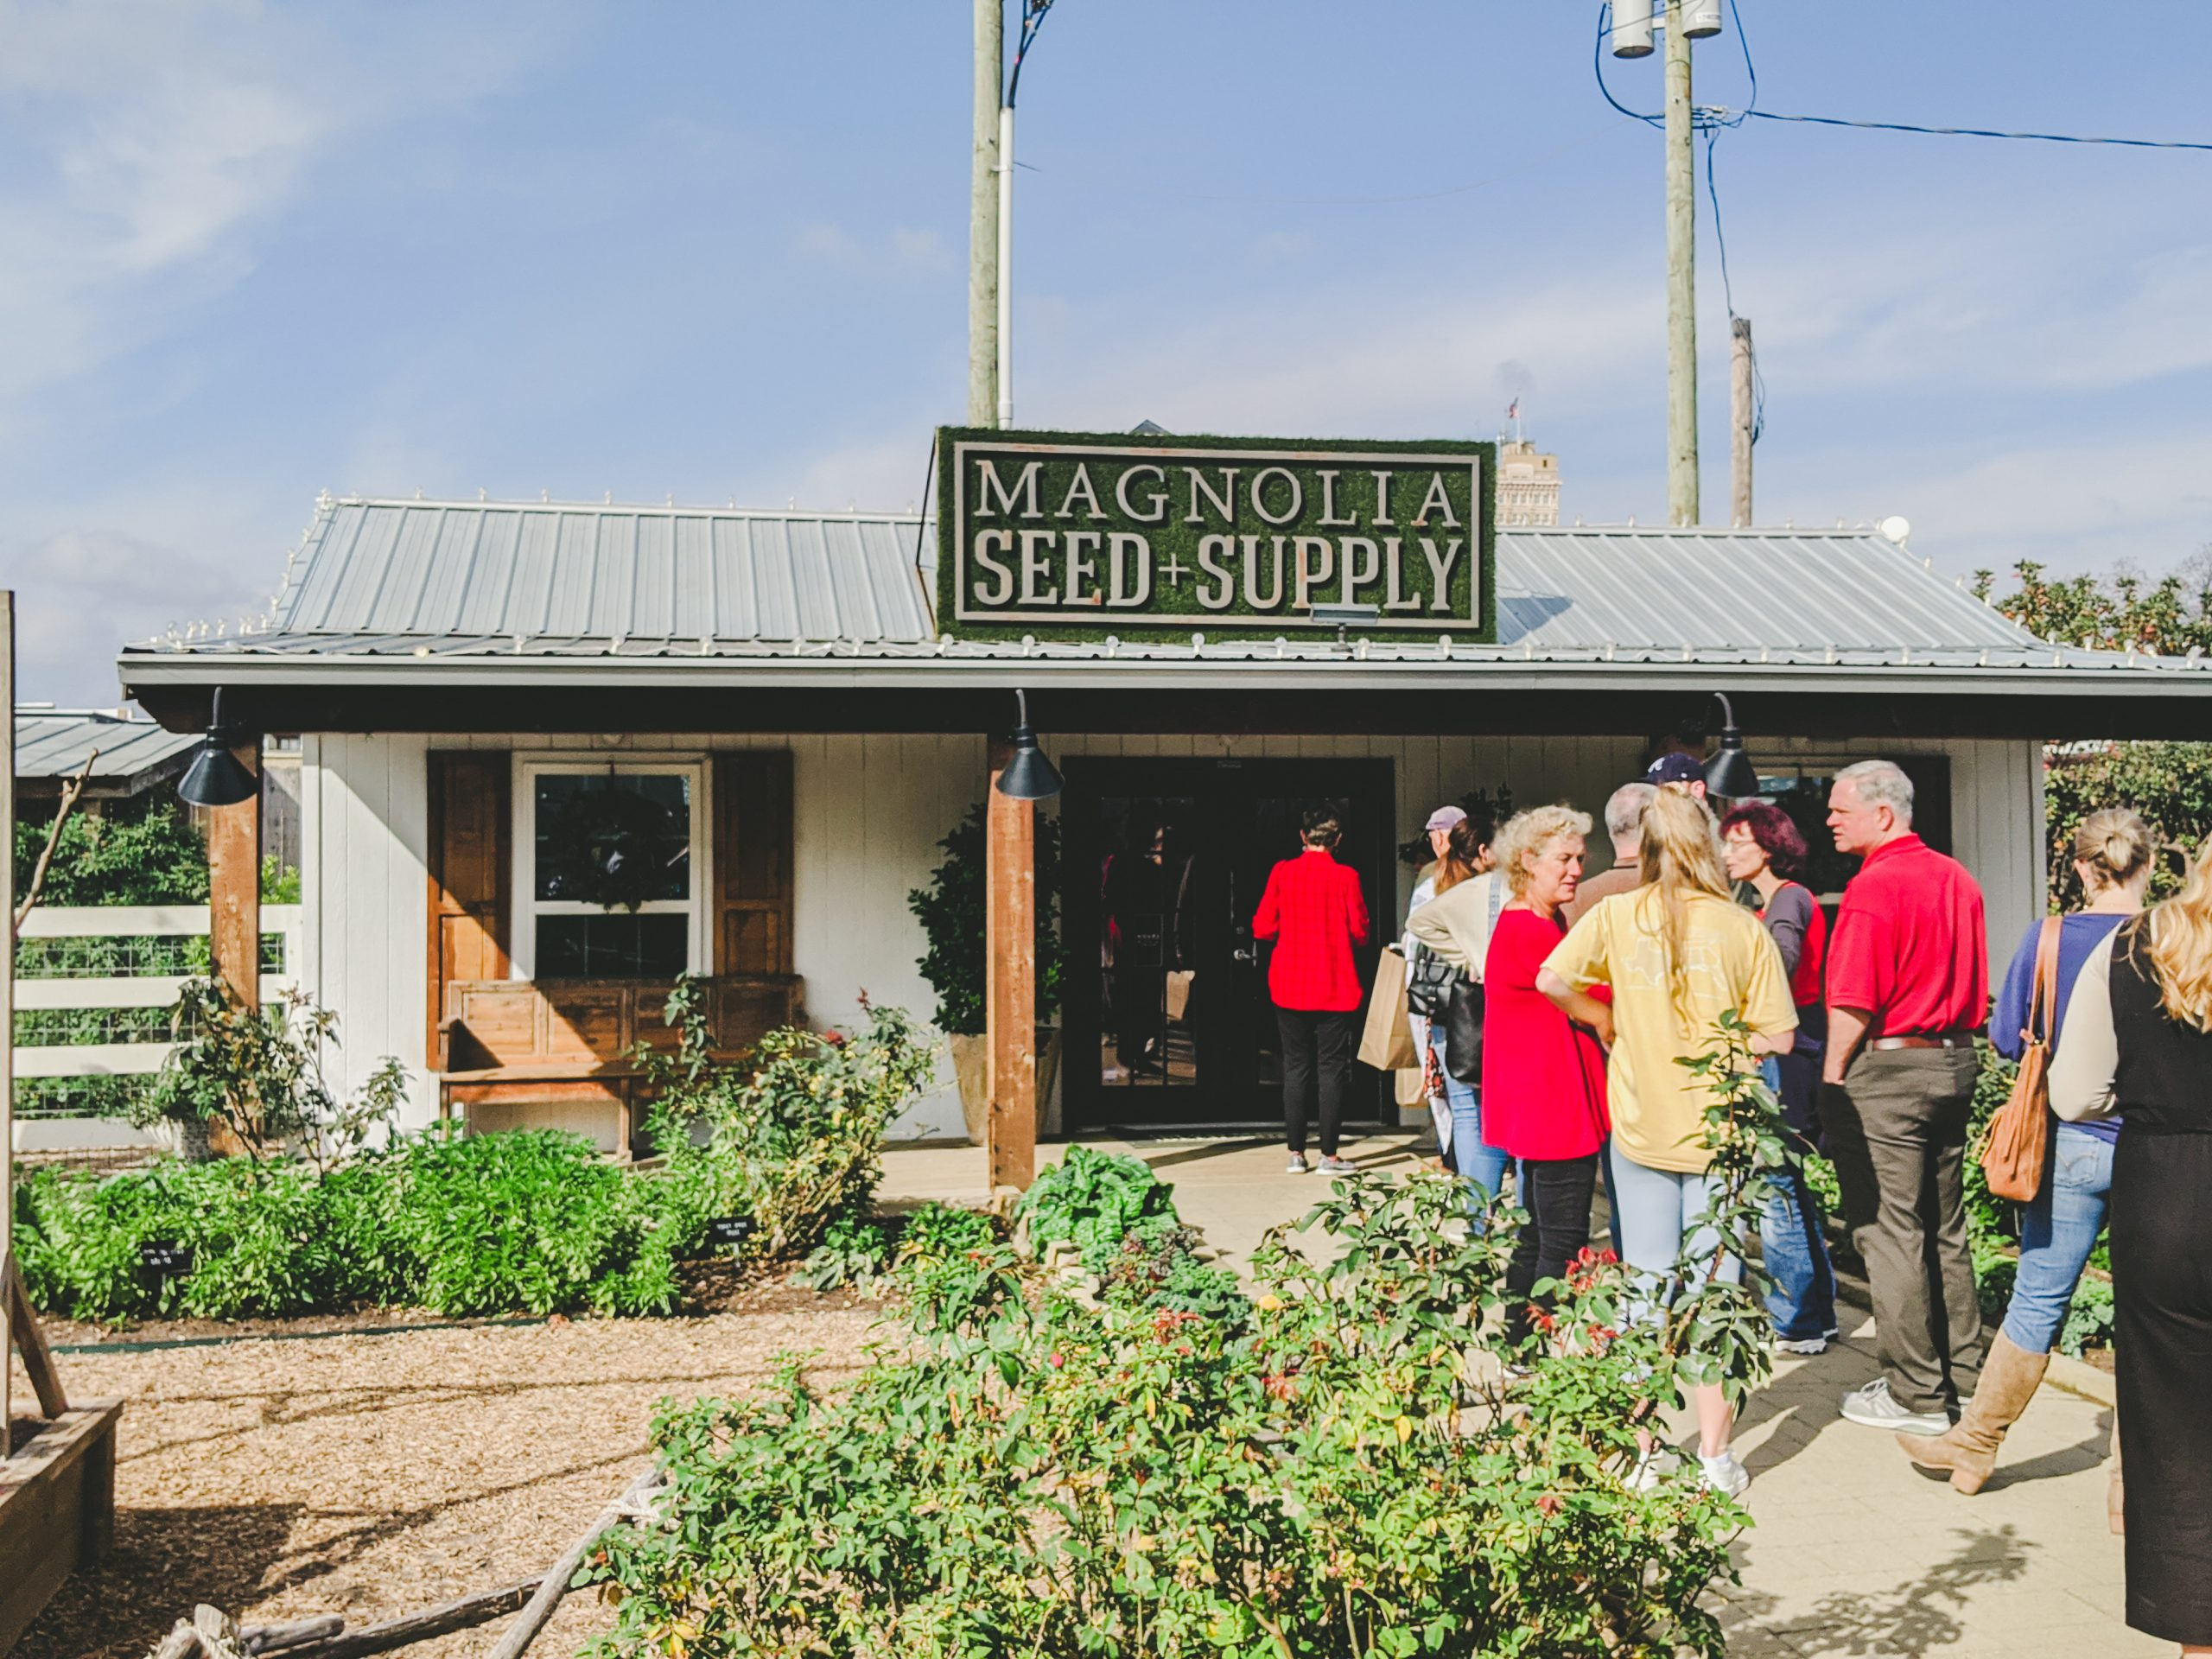 magnolia seed + supply store